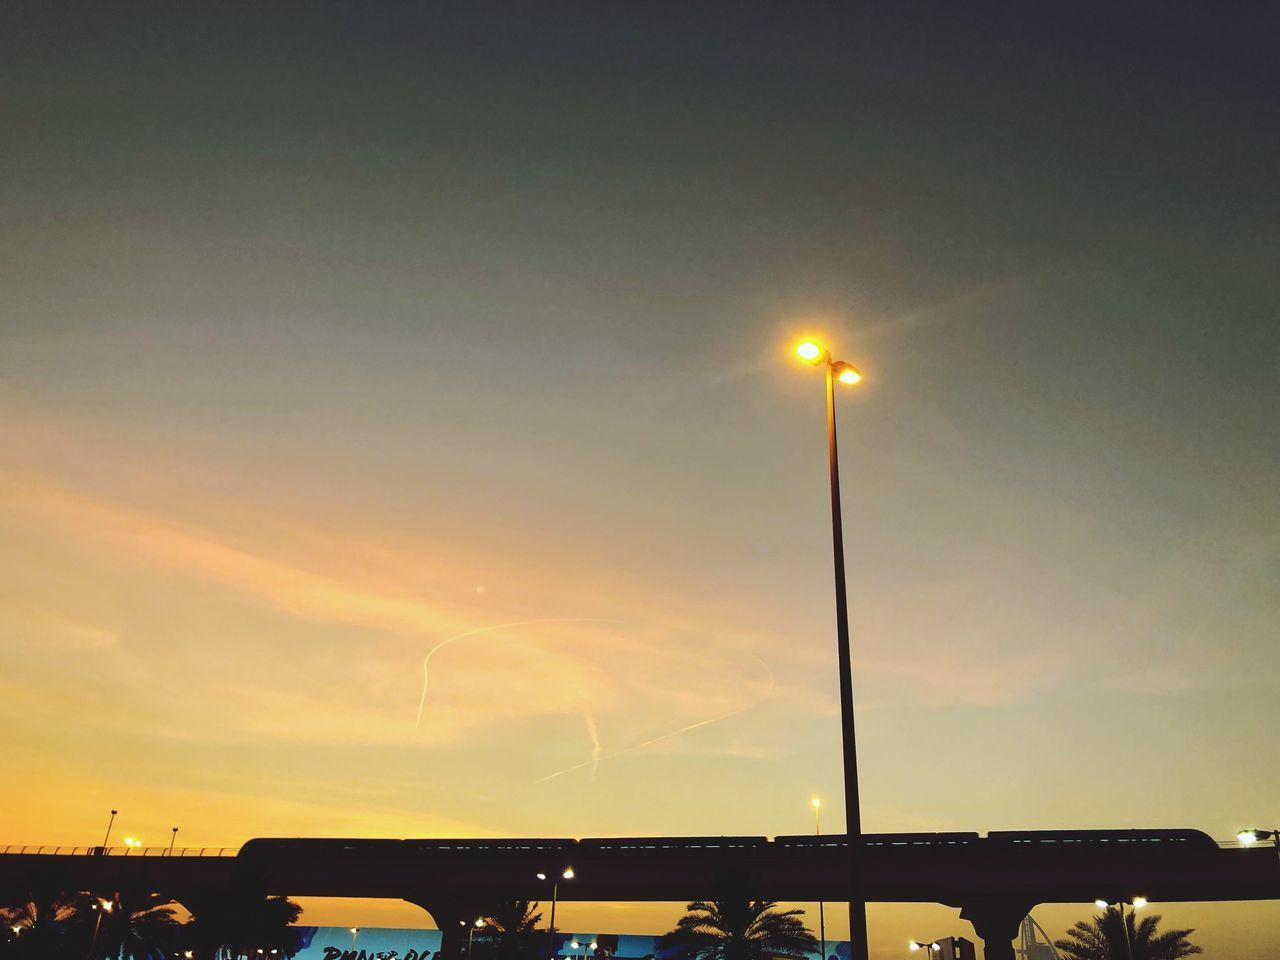 sky, street light, sunset, street, lighting equipment, illuminated, nature, bridge, architecture, bridge - man made structure, low angle view, outdoors, built structure, connection, silhouette, no people, transportation, car, cloud - sky, motor vehicle, light